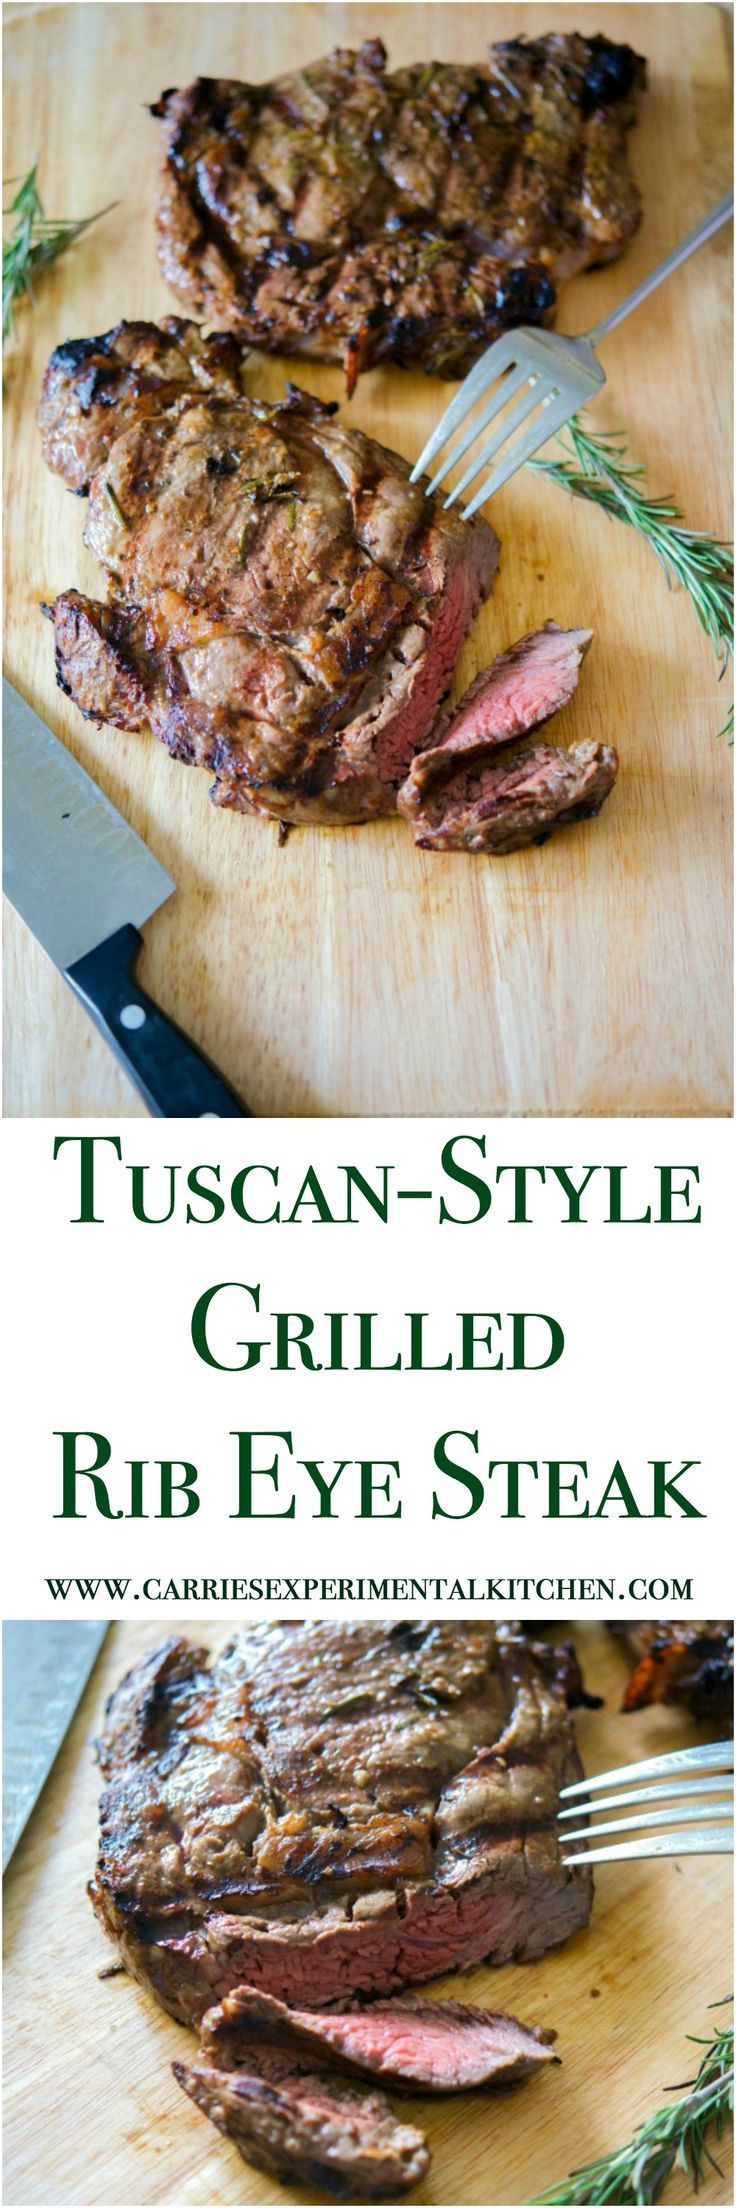 This Tuscan-Style Grilled Rib Eye Steak marinated in fresh rosemary, garlic, balsamic vinegar and olive oil is so tender, it will melt in your mouth.